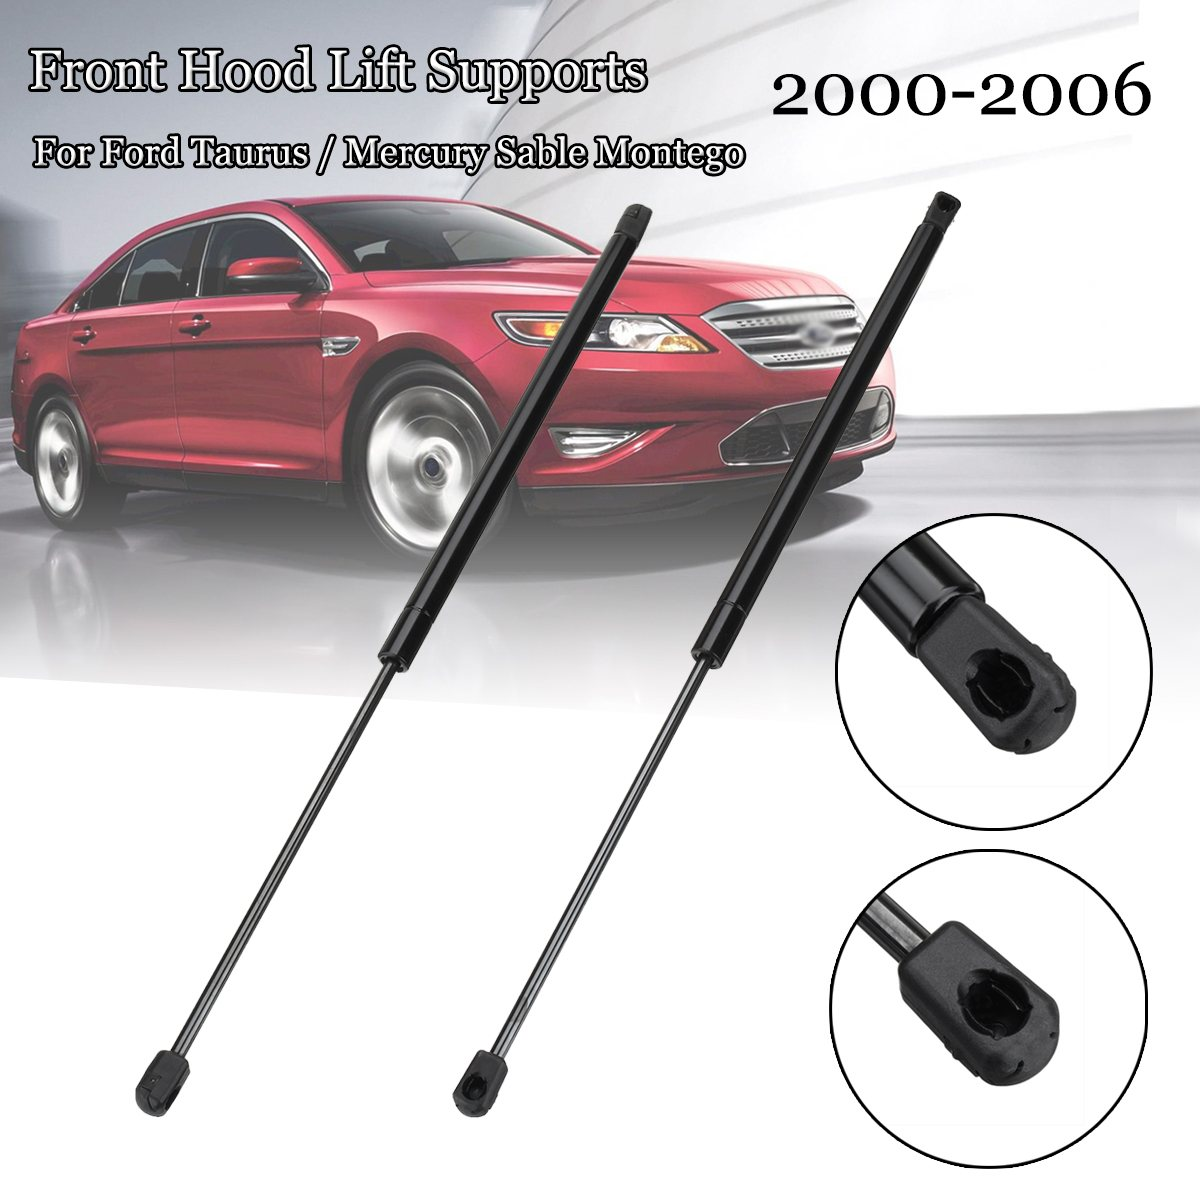 2Pcs Car Front Hood Lift Supports Struts Shocks For Ford Taurus for Mercury  Sable Montego 2F1Z16C826BA 600mm-in Strut Bars from Automobiles &  Motorcycles on ...